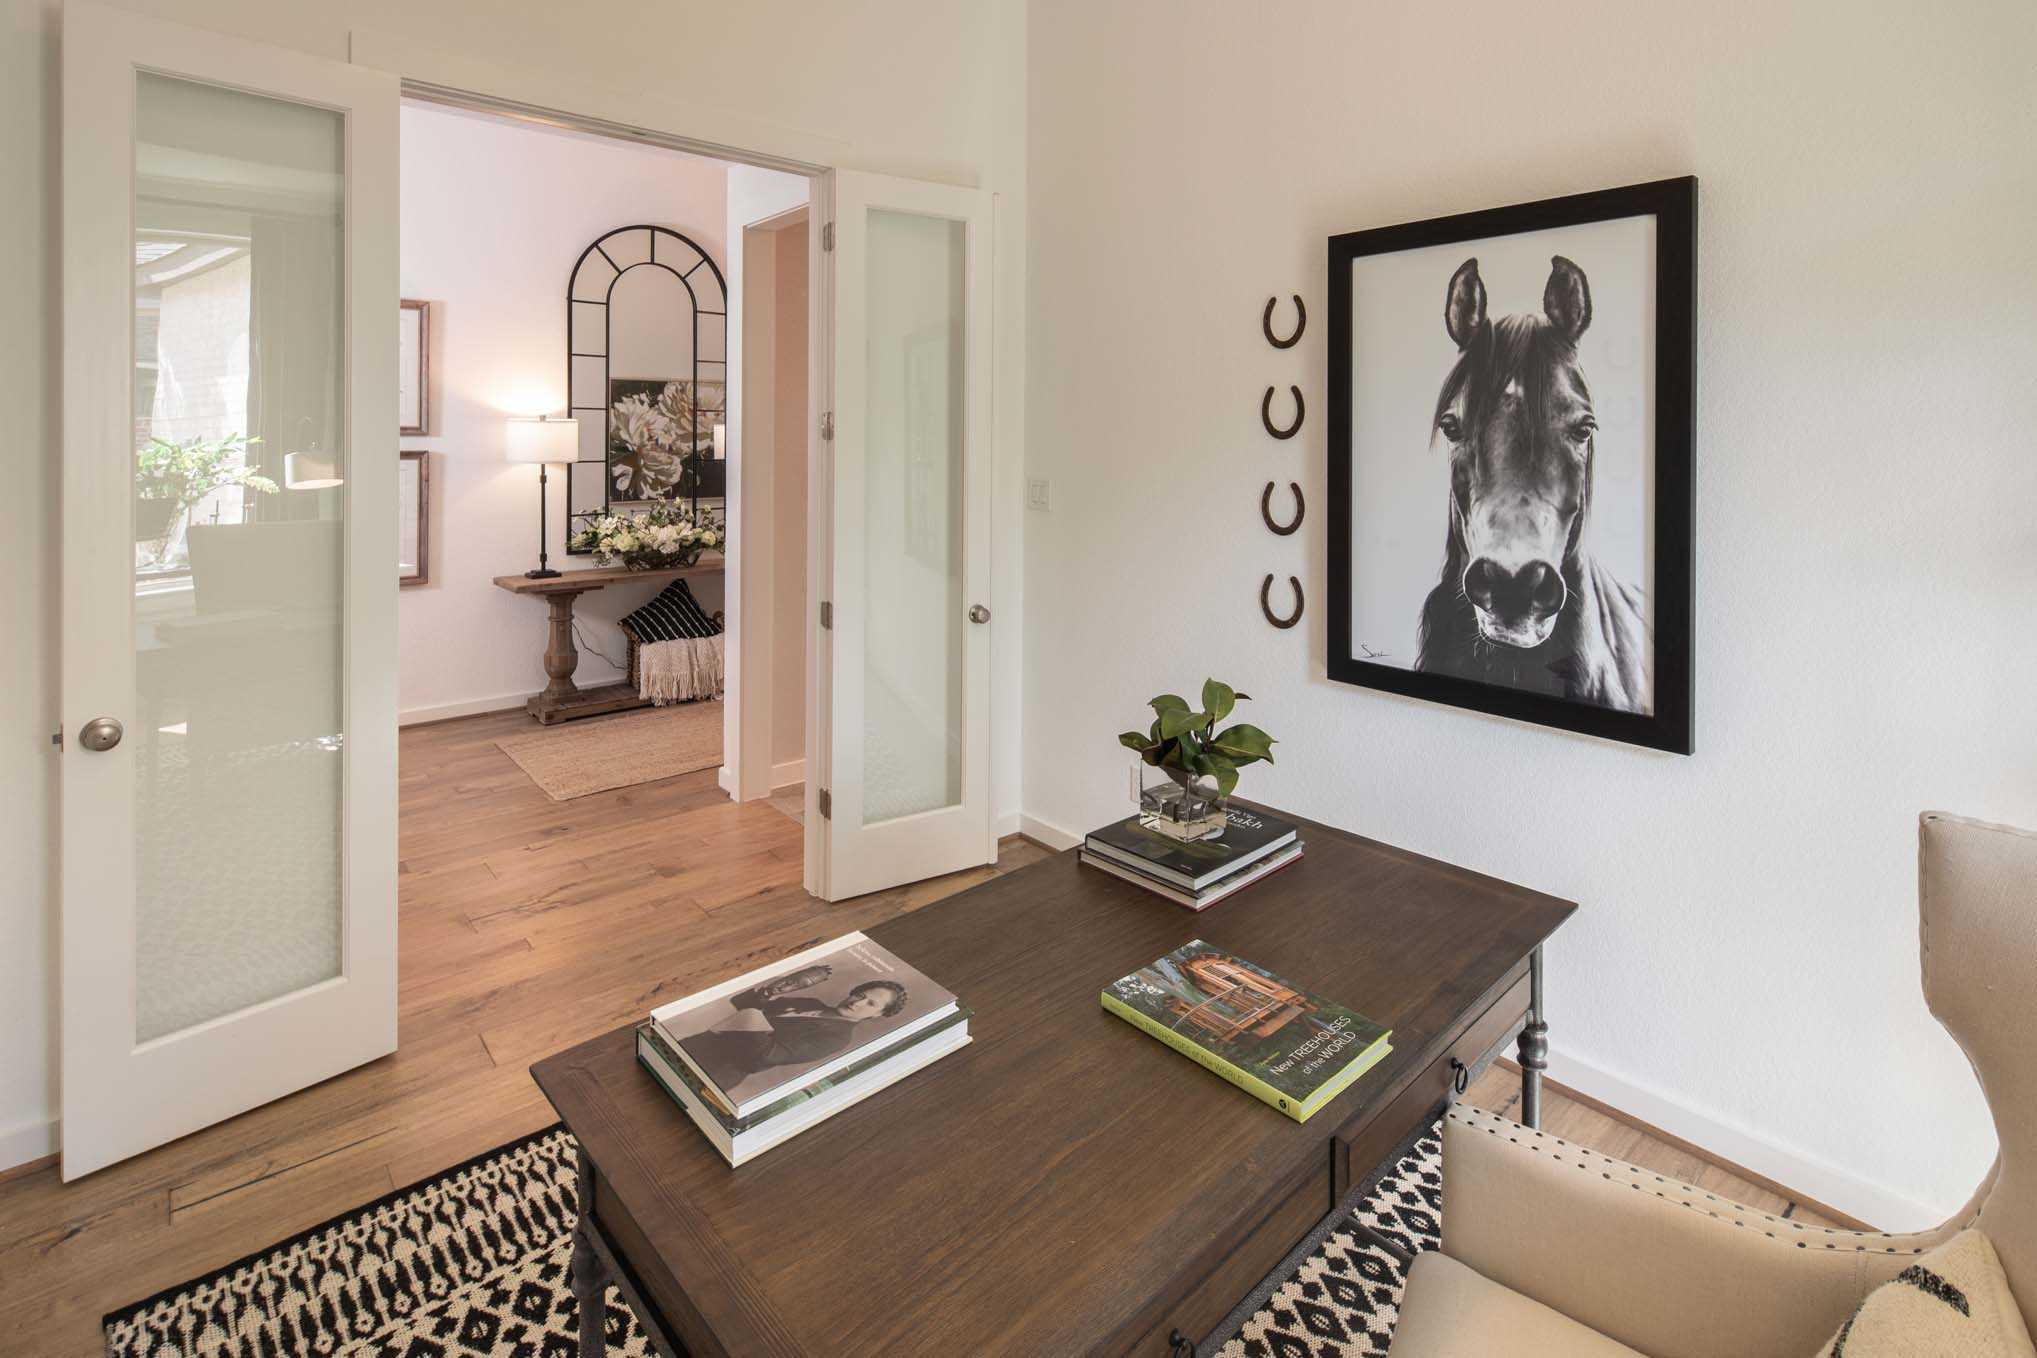 Living Area featured in the Plan Fairhall By Highland Homes in Dallas, TX